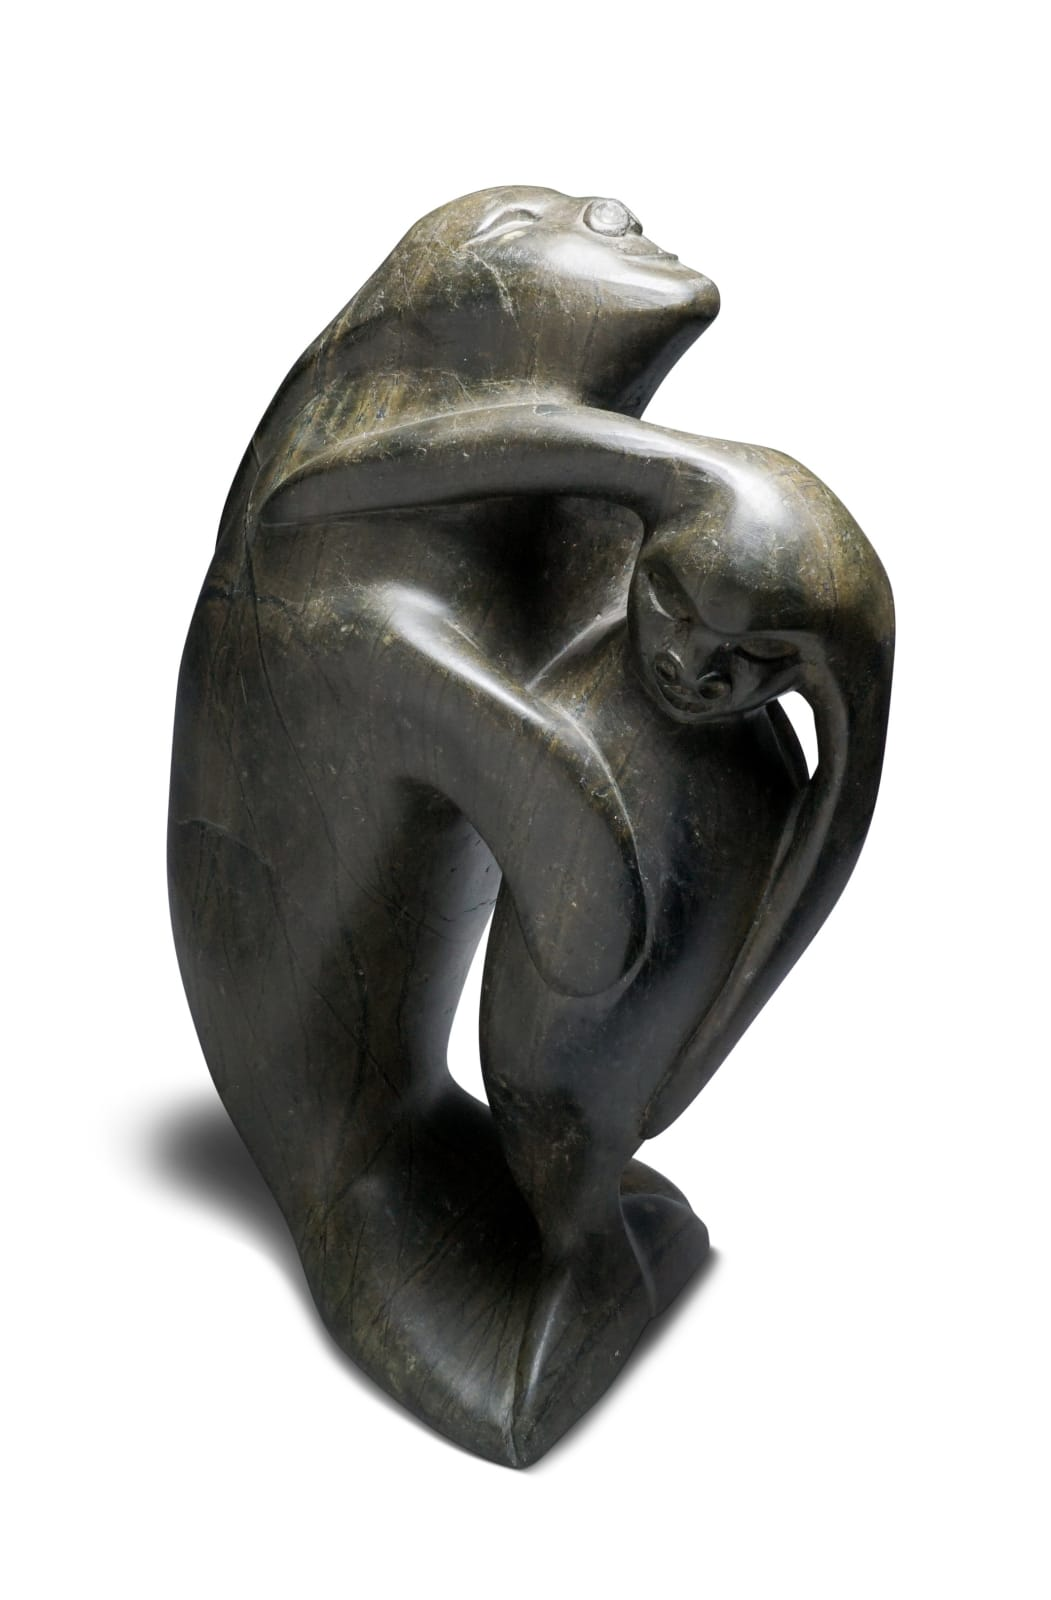 LOT 2 OSUITOK IPEELEE, R.C.A. (1923-2005) KINNGAIT (CAPE DORSET) Swimming Sedna With Her Child, c. 1970s stone, 16 x 10 x 6 in (40.6 x 25.4 x 15.2 cm) ESTIMATE: $2,500 — $3,500 PRICE REALIZED: $1,800